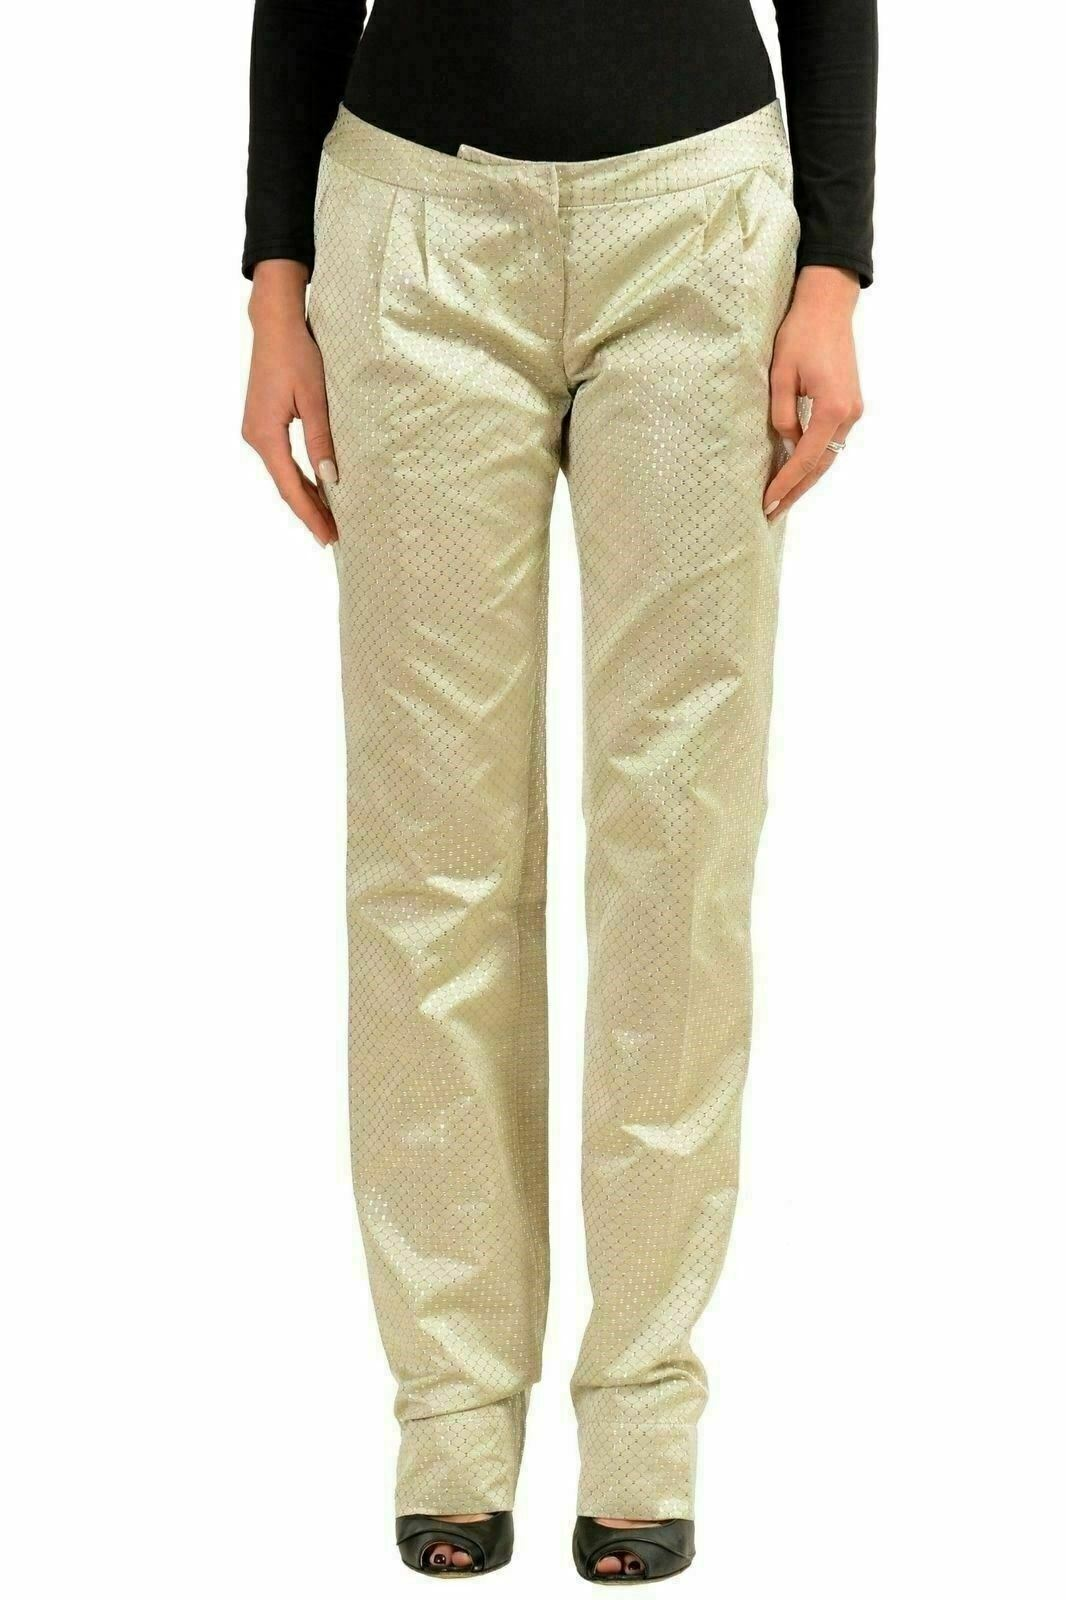 Just Cavalli Women's Sparkling Pleated Casual Pants US 4 IT 40